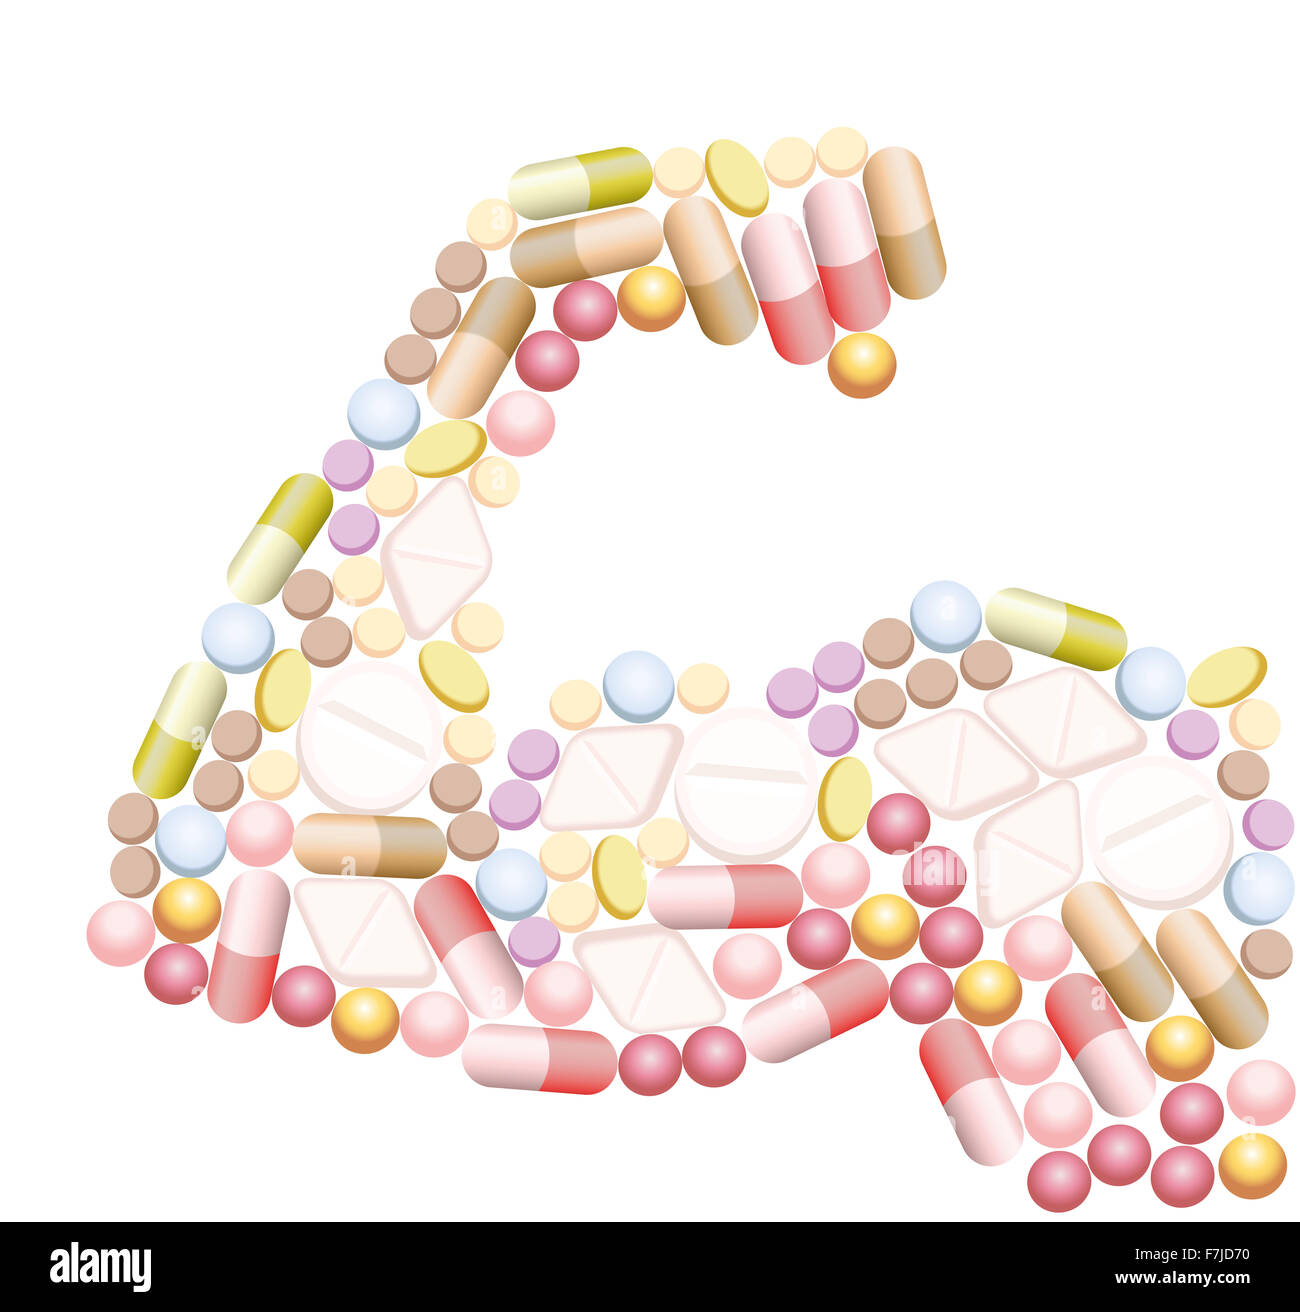 Doping - anabolic drugs, pills and capsules, that shape the biceps of a muscular arm. Stock Photo